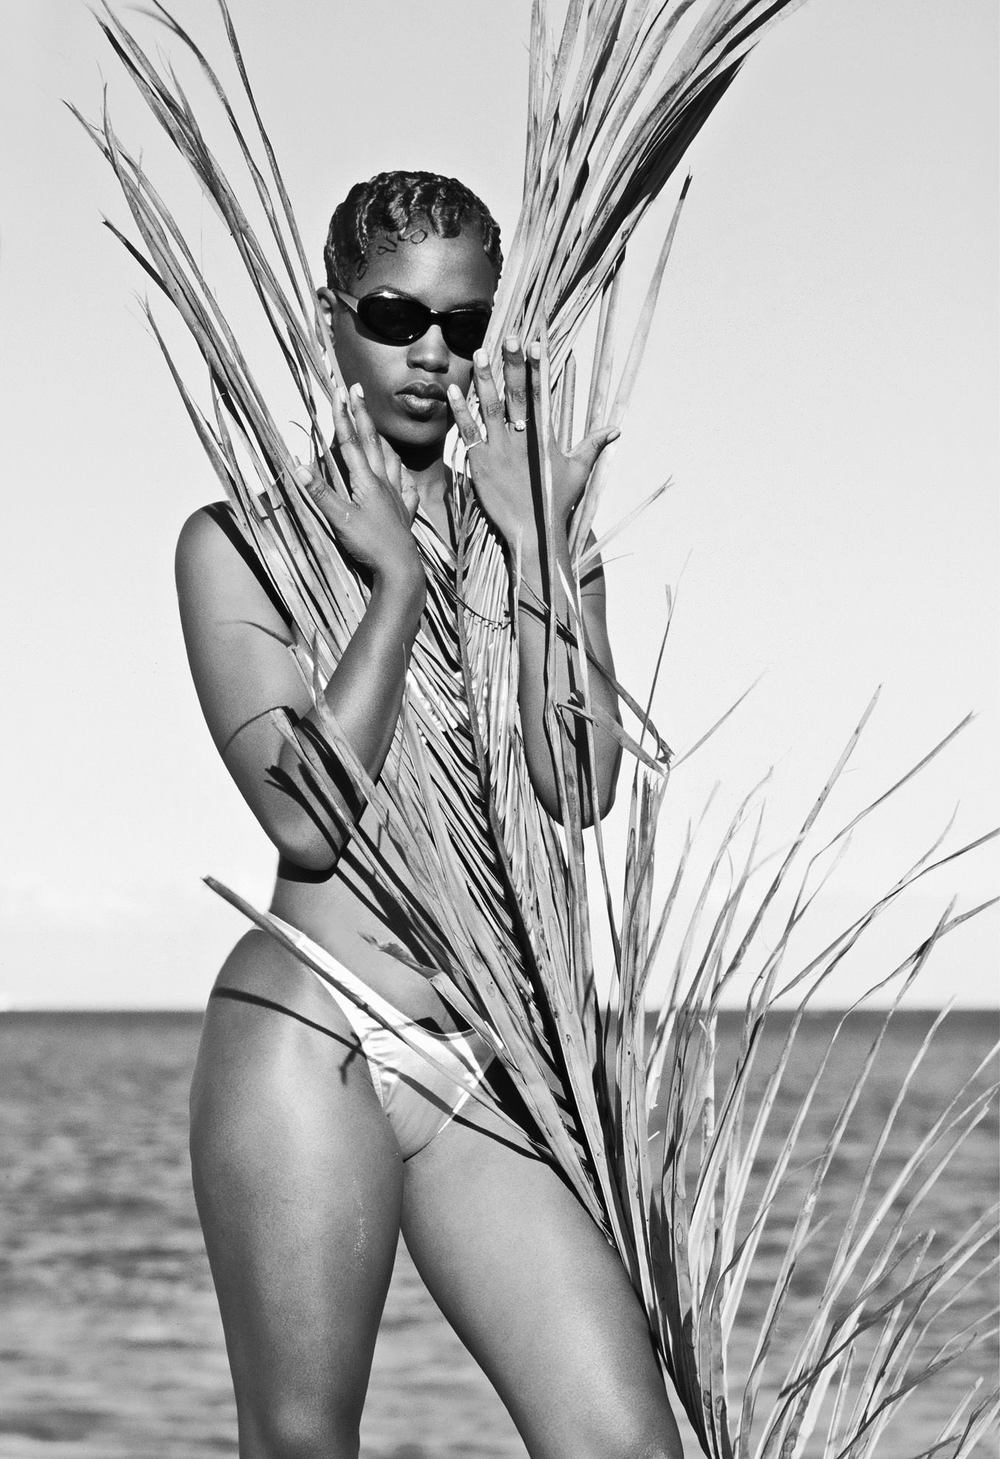 nadine beach w palm leaves bw onsware copy.jpg